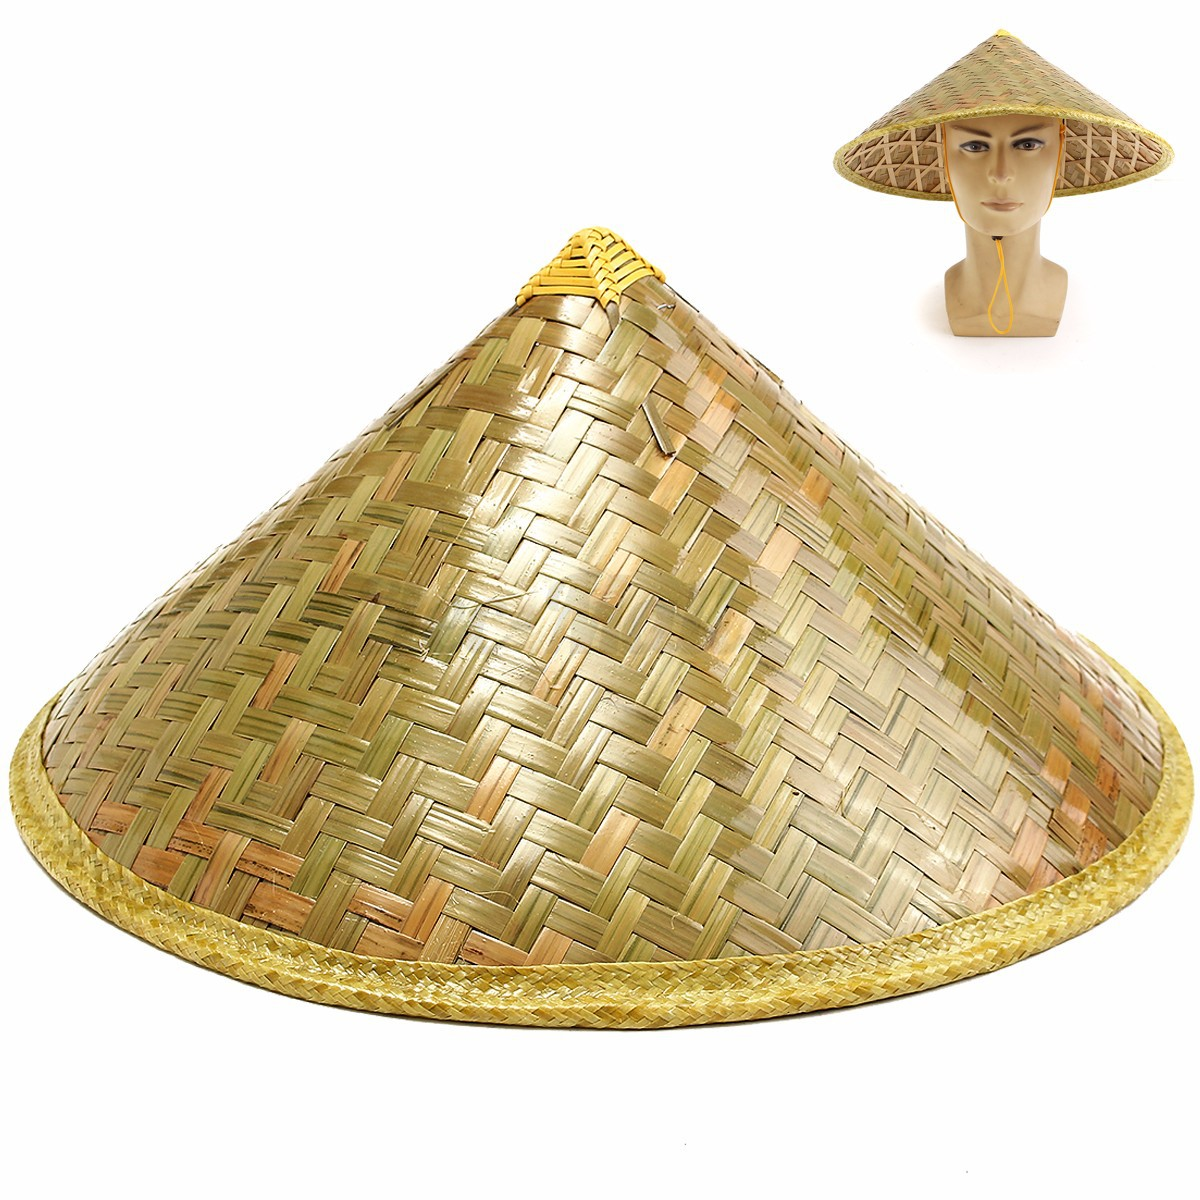 Coolie Hat: Asian Vietnamese Japanese Coolie Straw Bamboo Sun Hat